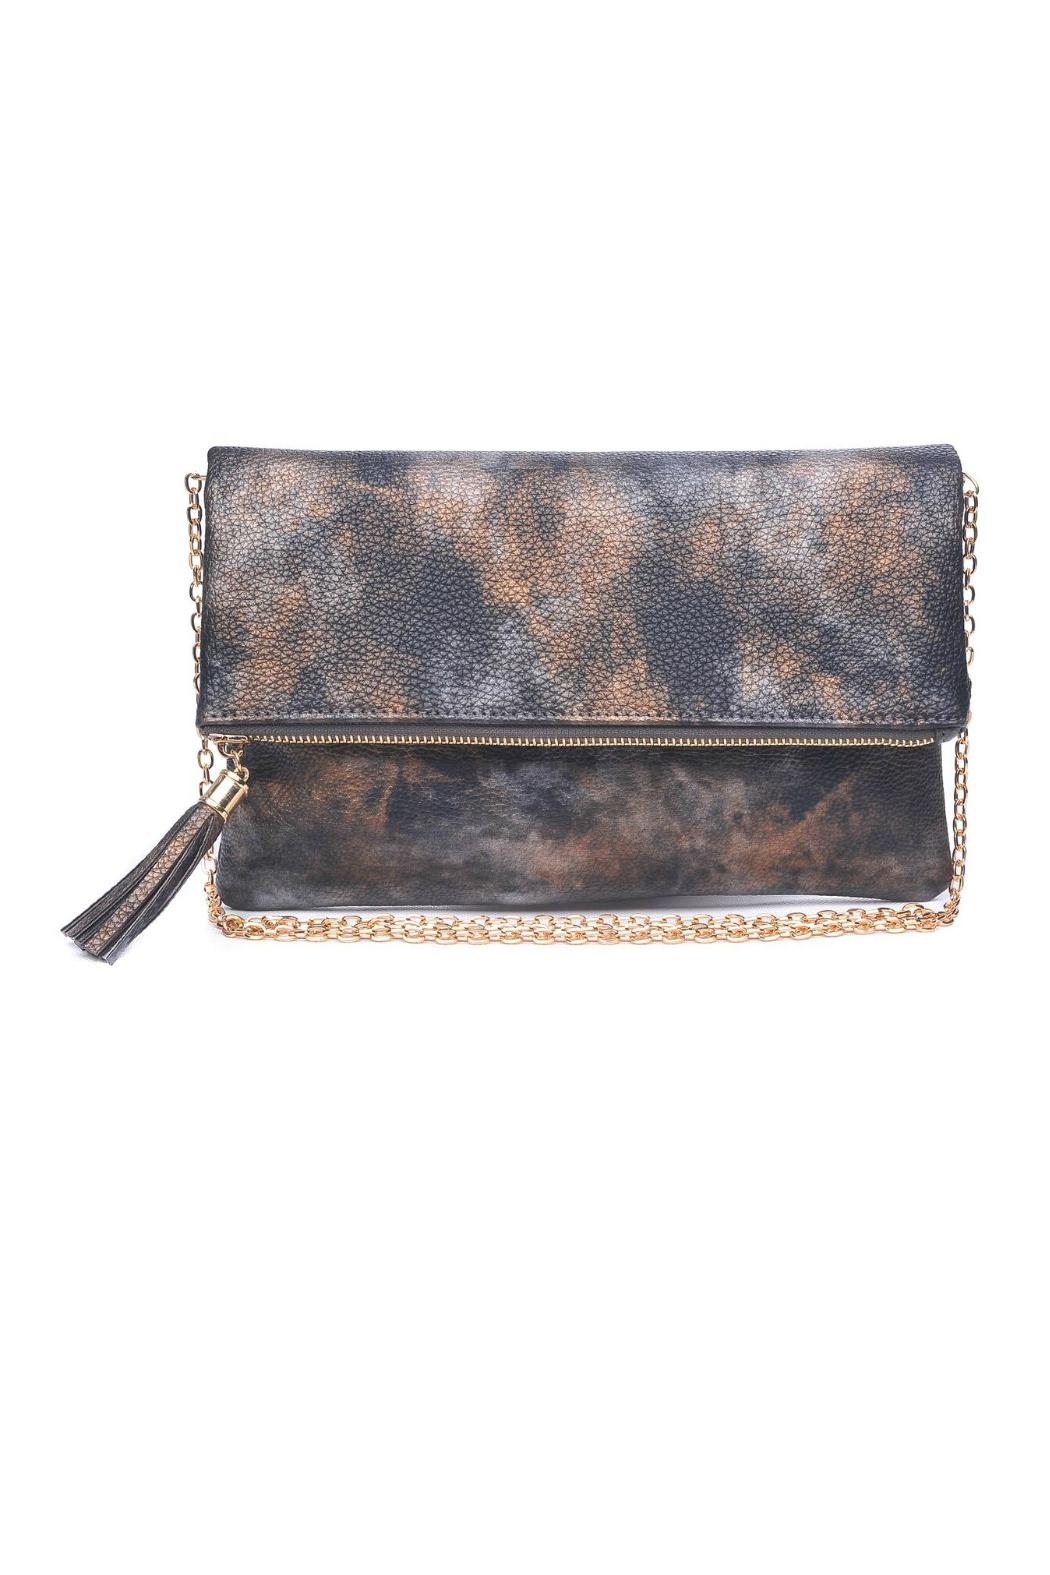 Urban Expressions Soleil Tassel Clutch - Front Cropped Image